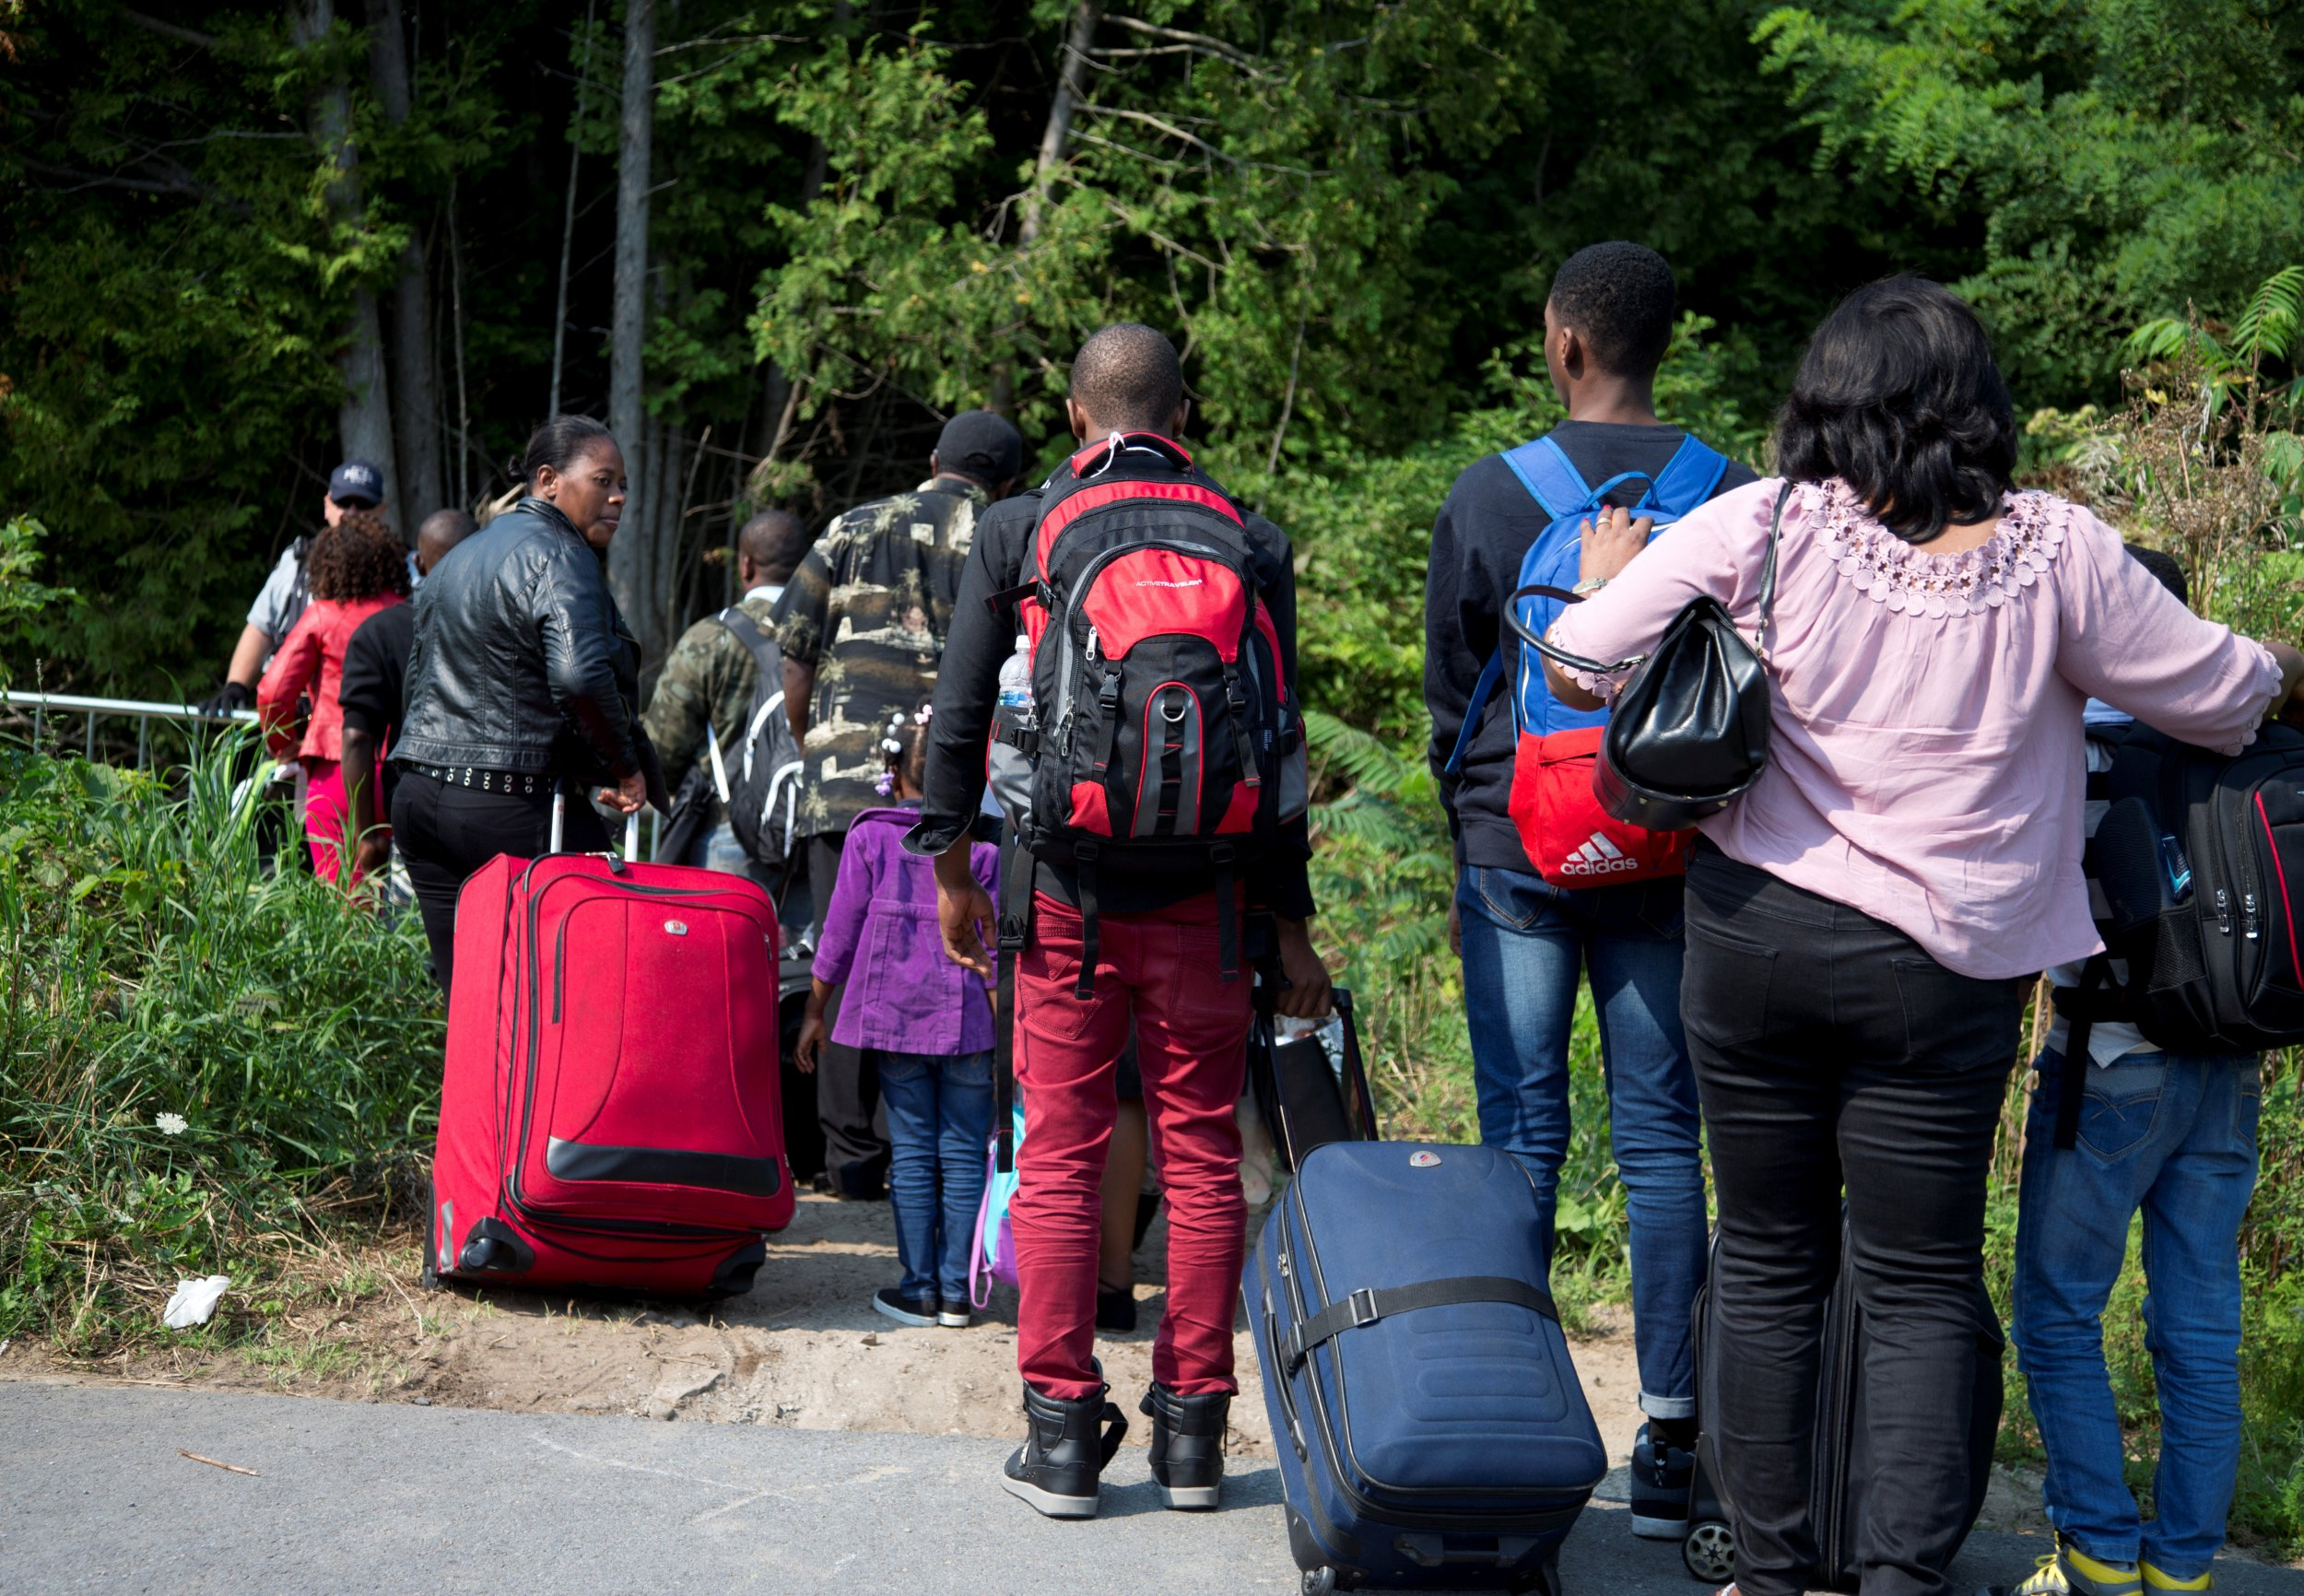 Canadian immigration officials tell immigrants don't cross border without papers